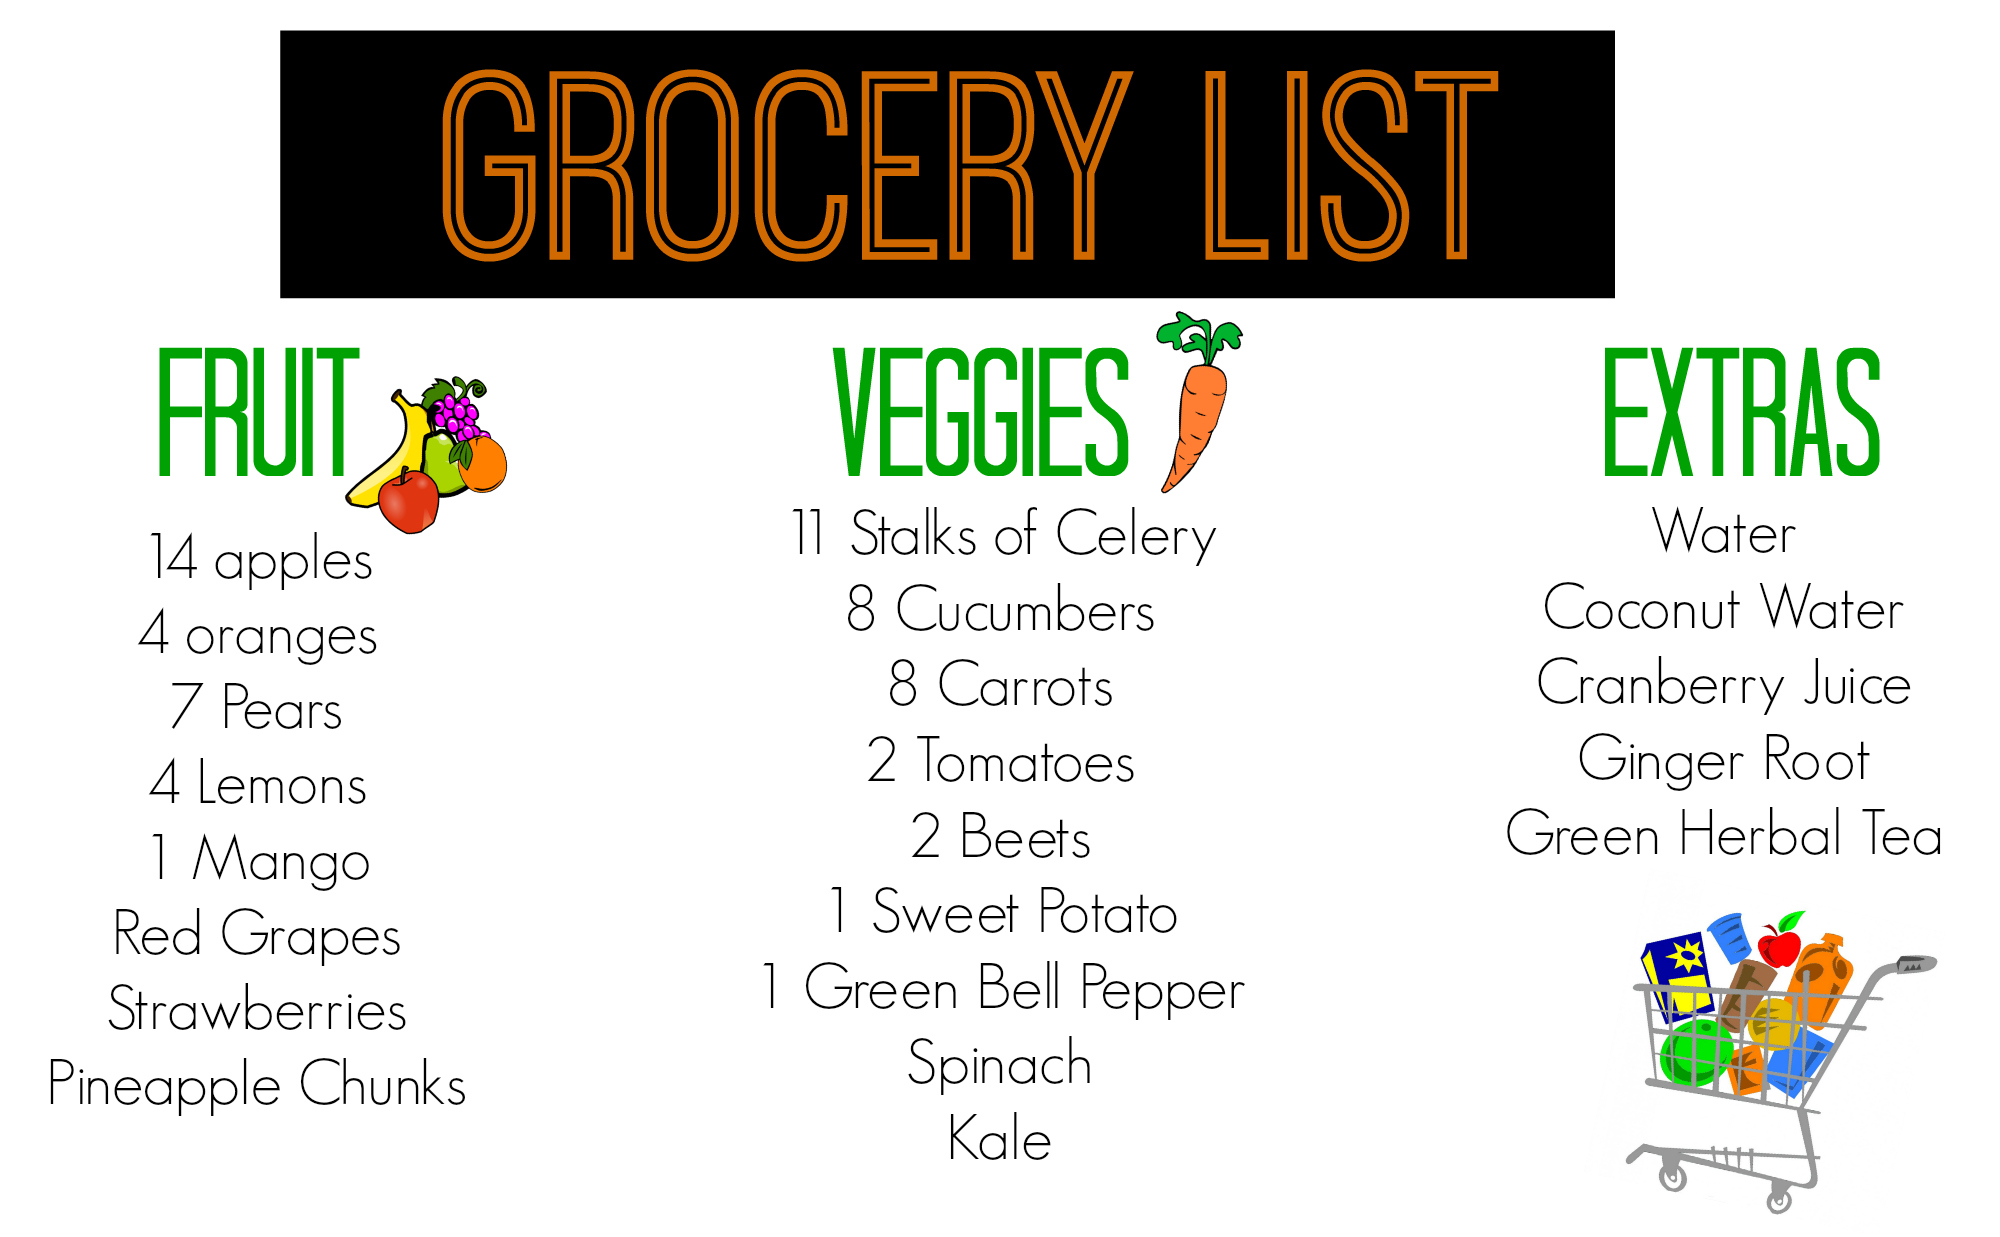 Grocery List- 3 Day Cleanse